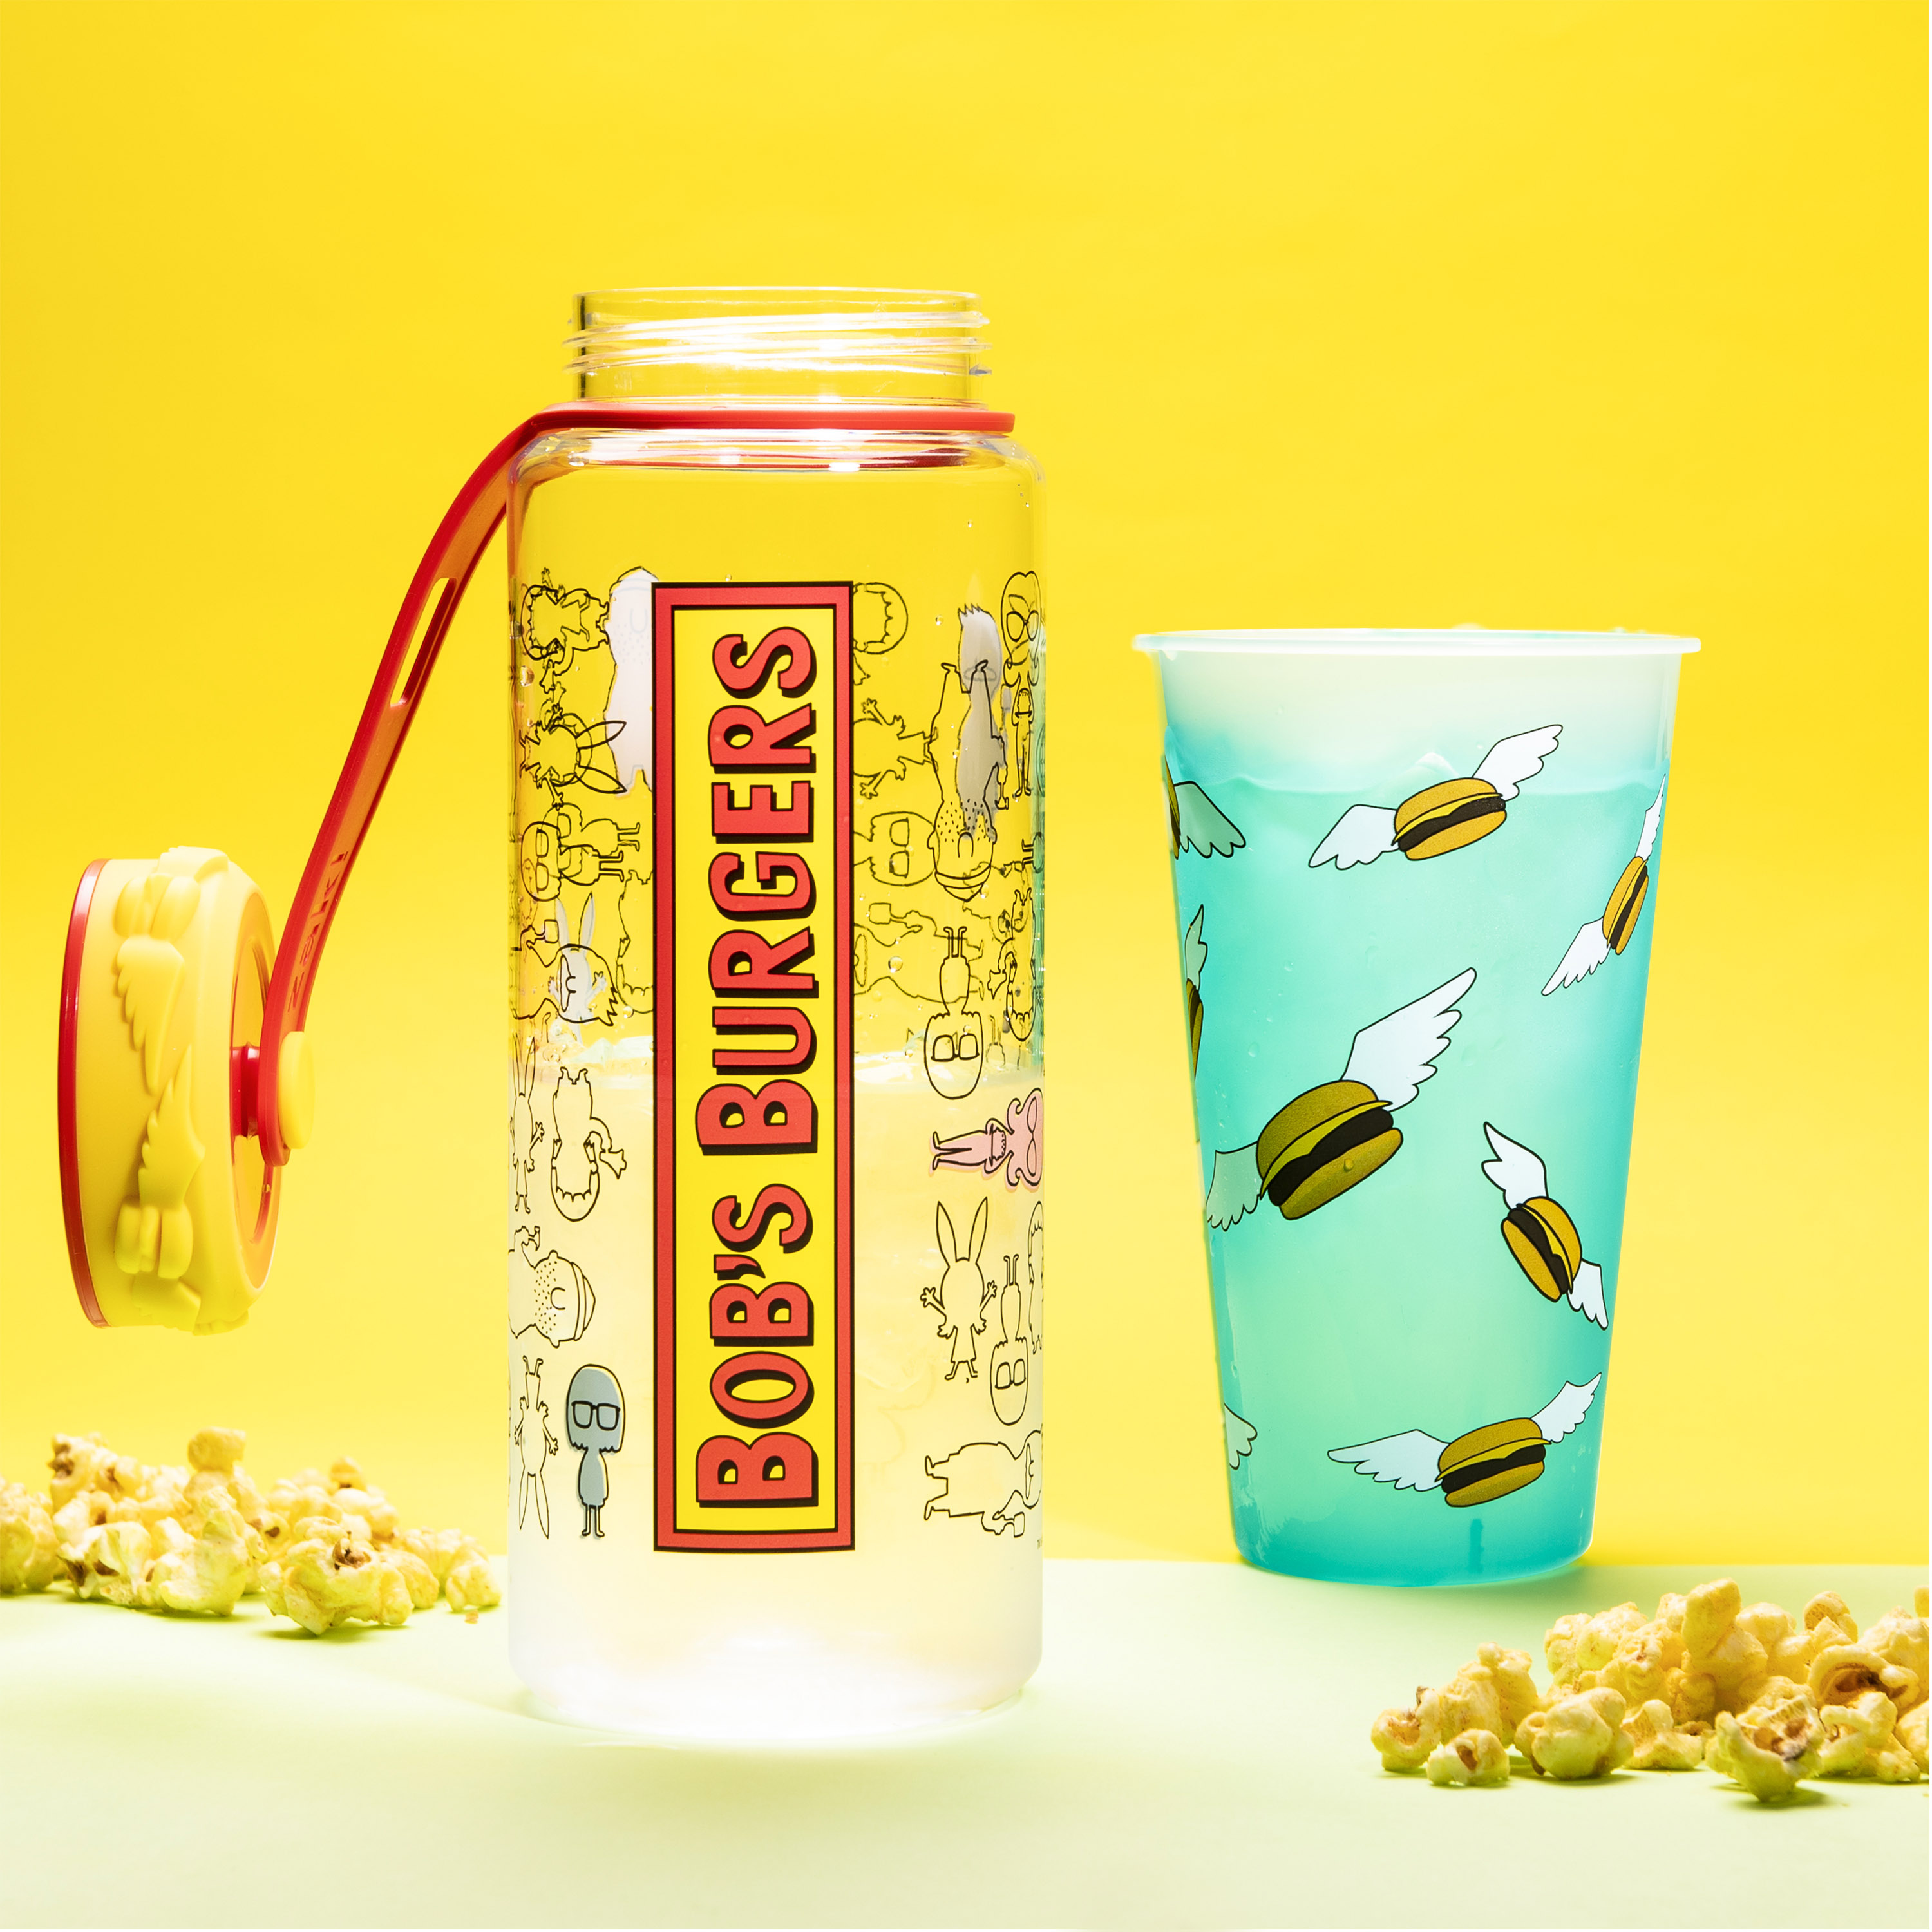 Bobs Burgers 36 ounce Water Bottles, The Belcher Family slideshow image 3